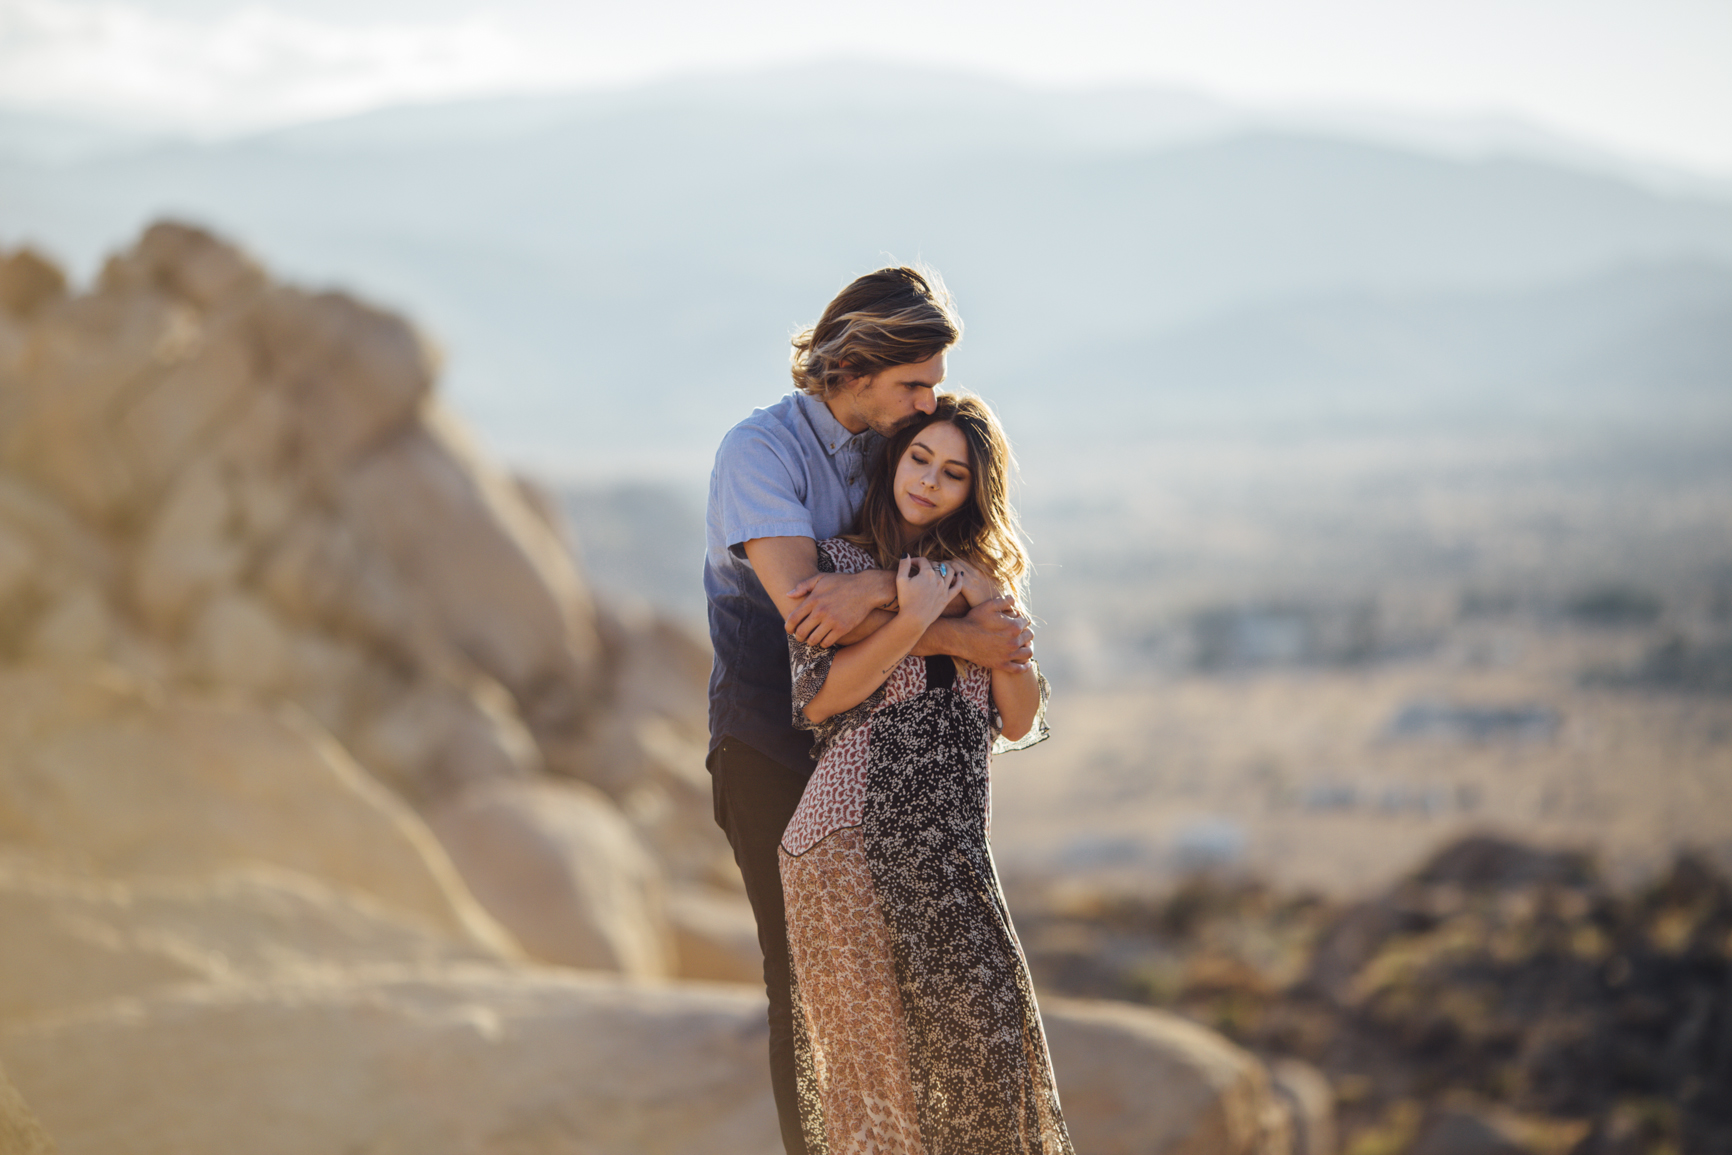 Joshua_Tree_Engagement_Couple_Wedding_California_Photography_Artur_Zaitsev-18